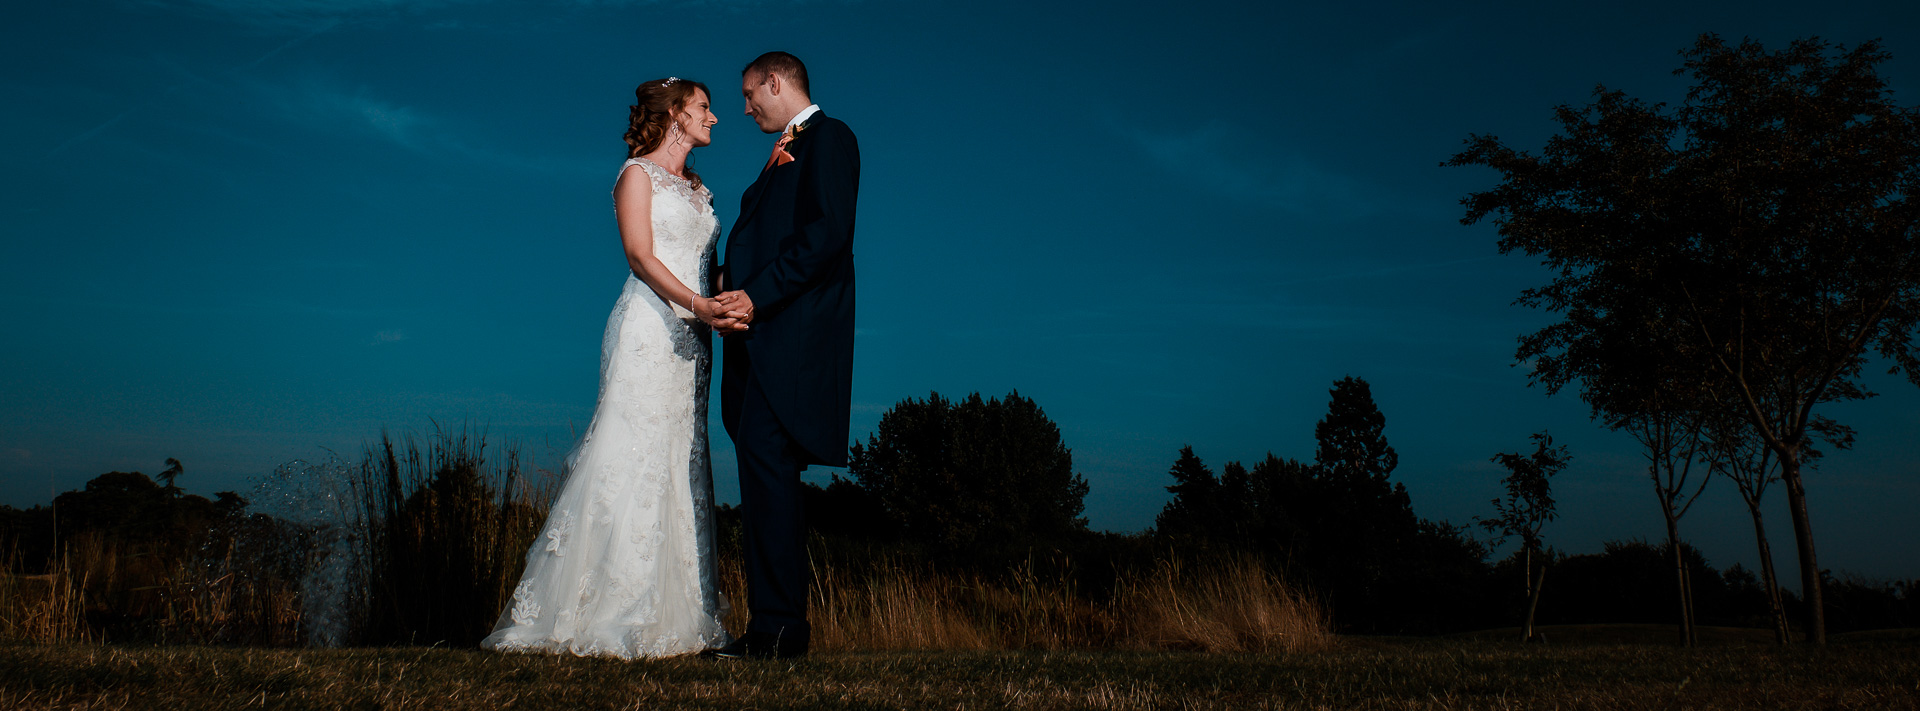 Leanne and Carl's Wedding at Ufford Park